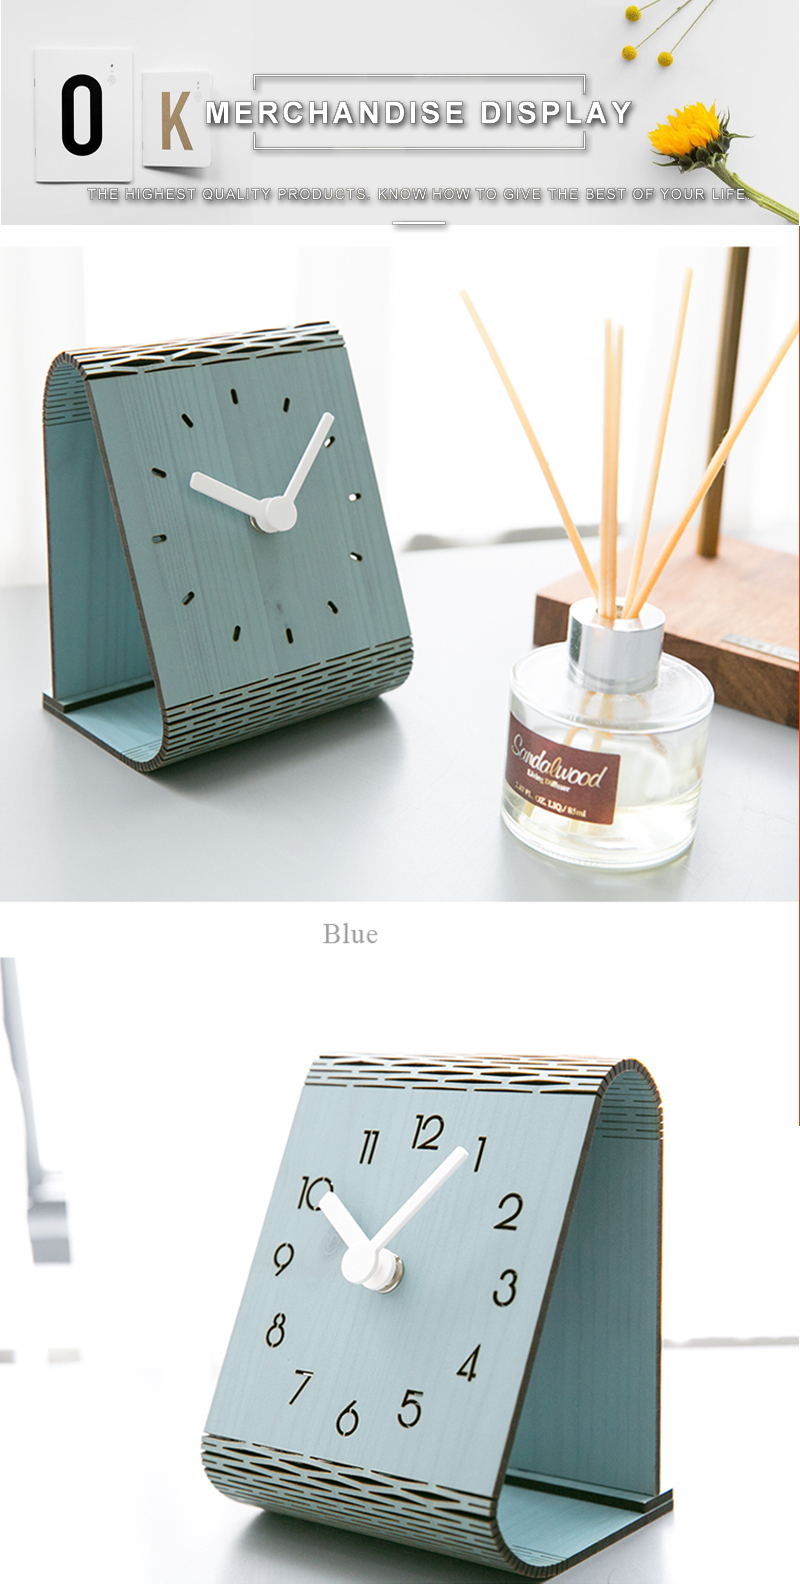 clock retro clock with time projection clock vintage automobile clock alarm clock bedroom clock clock flip watch table table clock vintage table clocks office decoration (3)